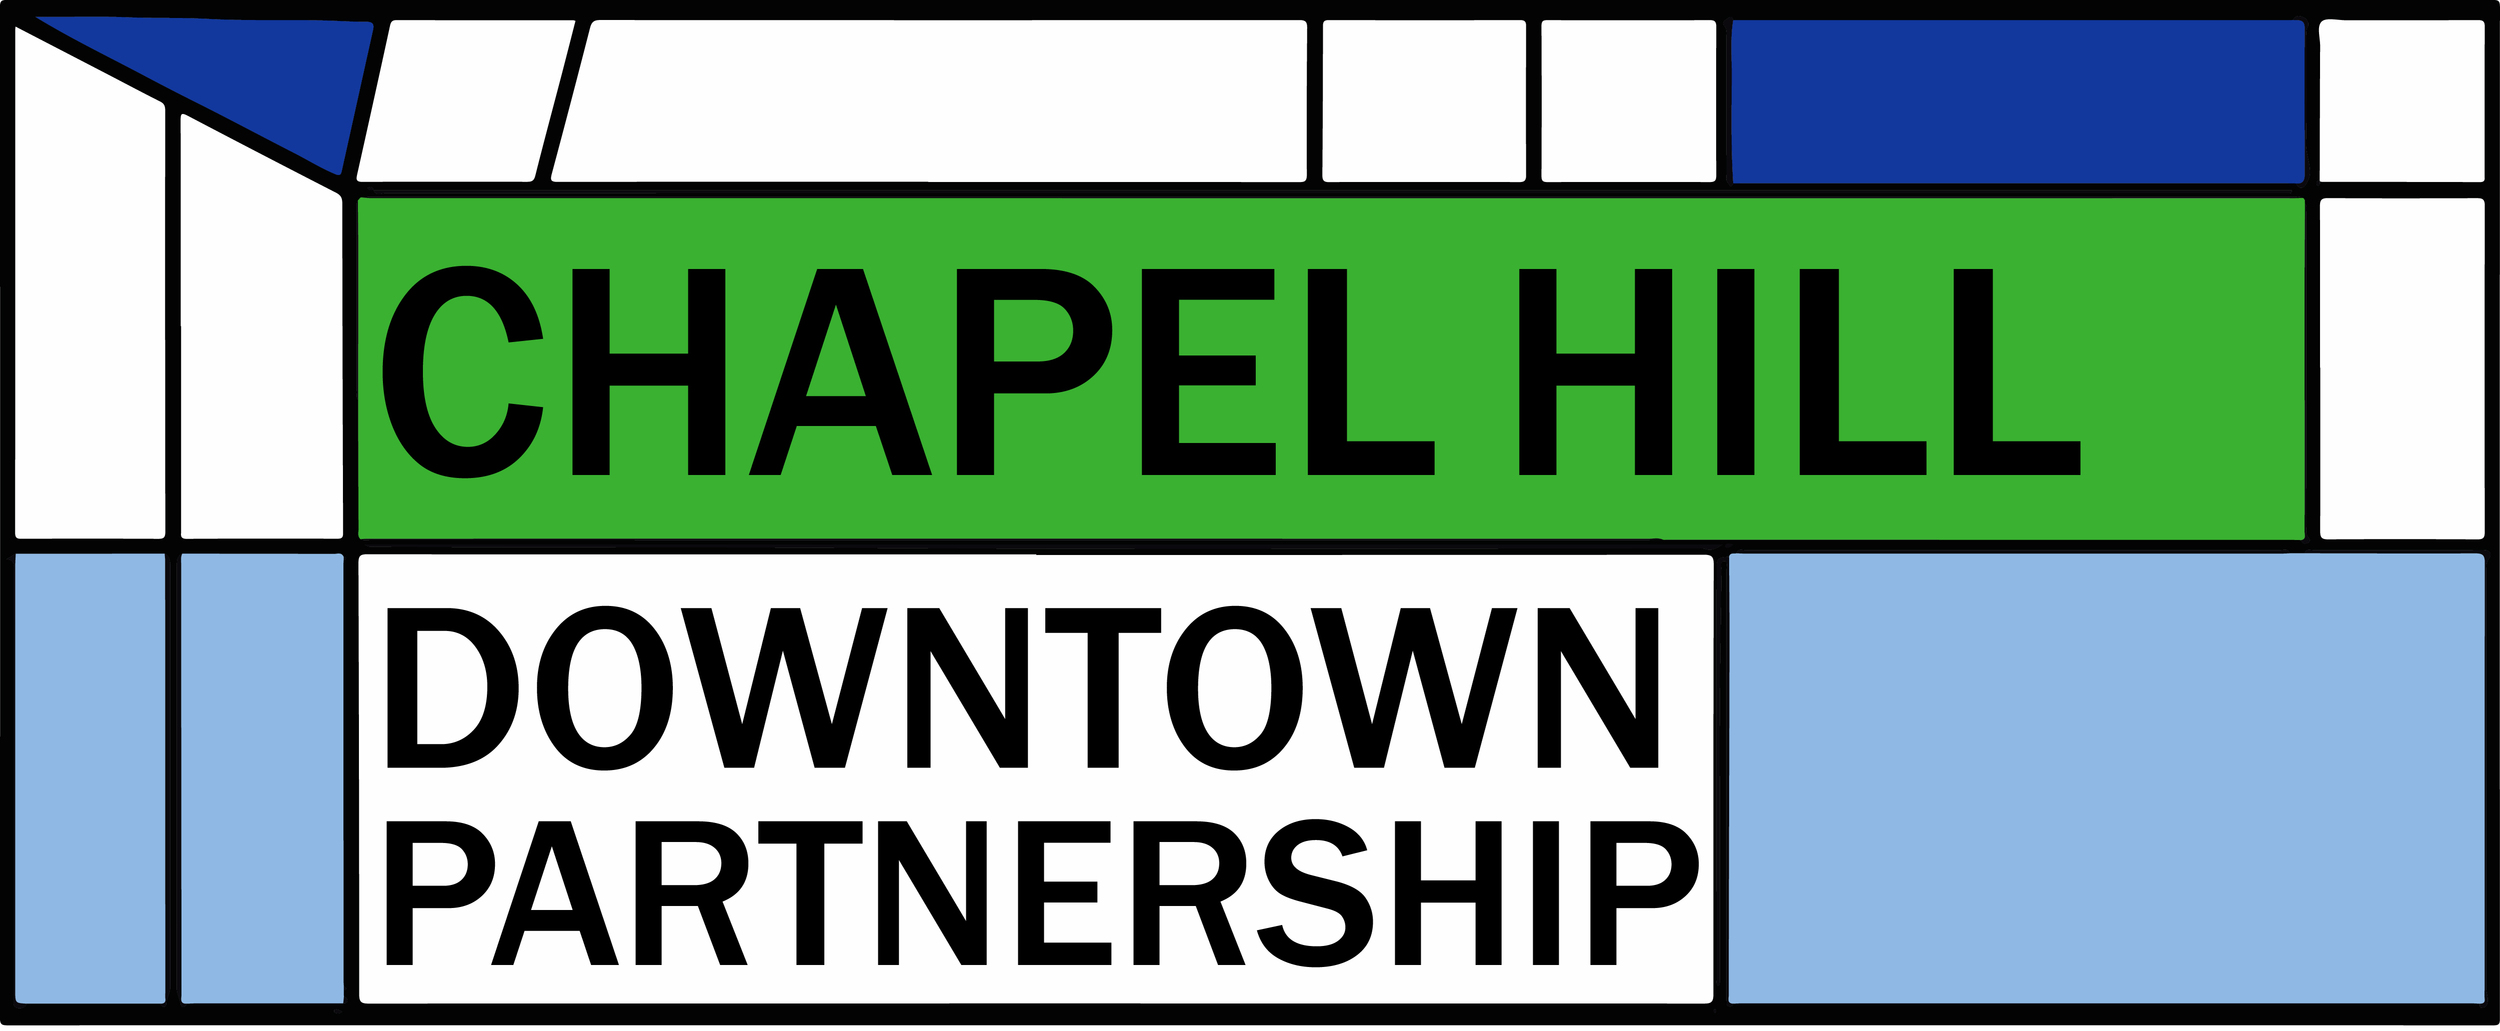 Downtown Partnership Logo.jpg